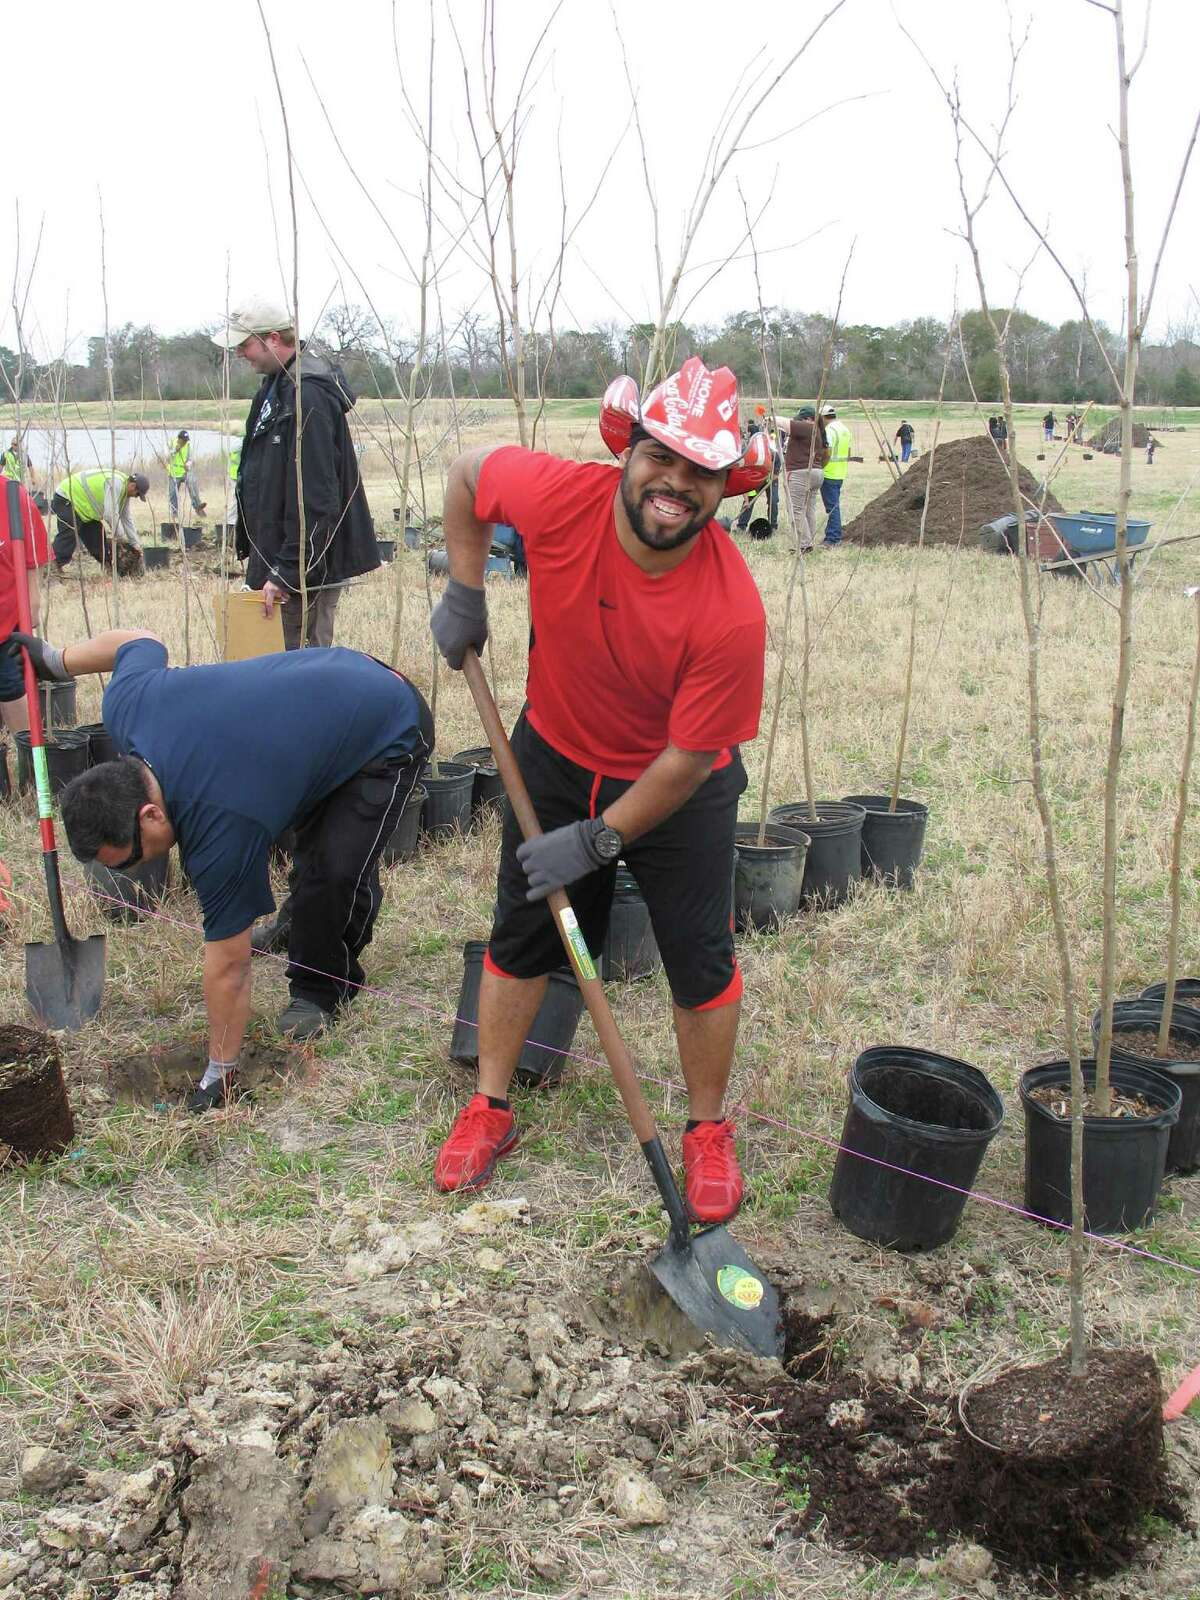 A volunteer digs at the Houston Area Urban Forestry Council's 2014 Arbor Day Tree Planting Competition held on Feb. 1 at a detention basin.